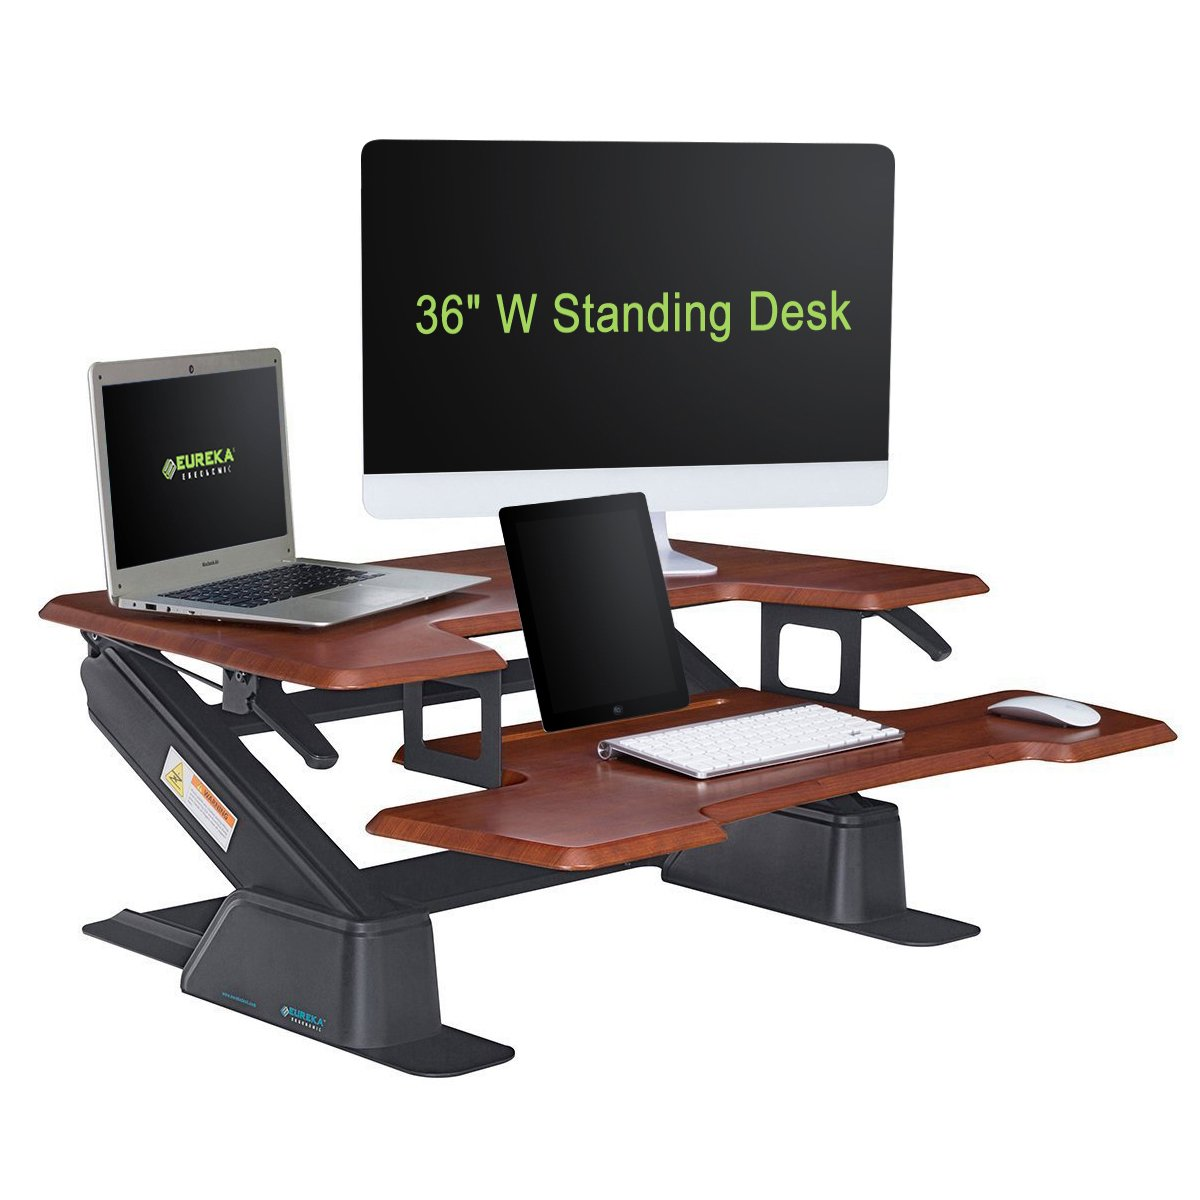 EUREKA ERGONOMIC Height-Adjustable Sit-Stand Desk Top, 36-Inch Wide, No Assembly Required, SGS Top Rated, Cherry